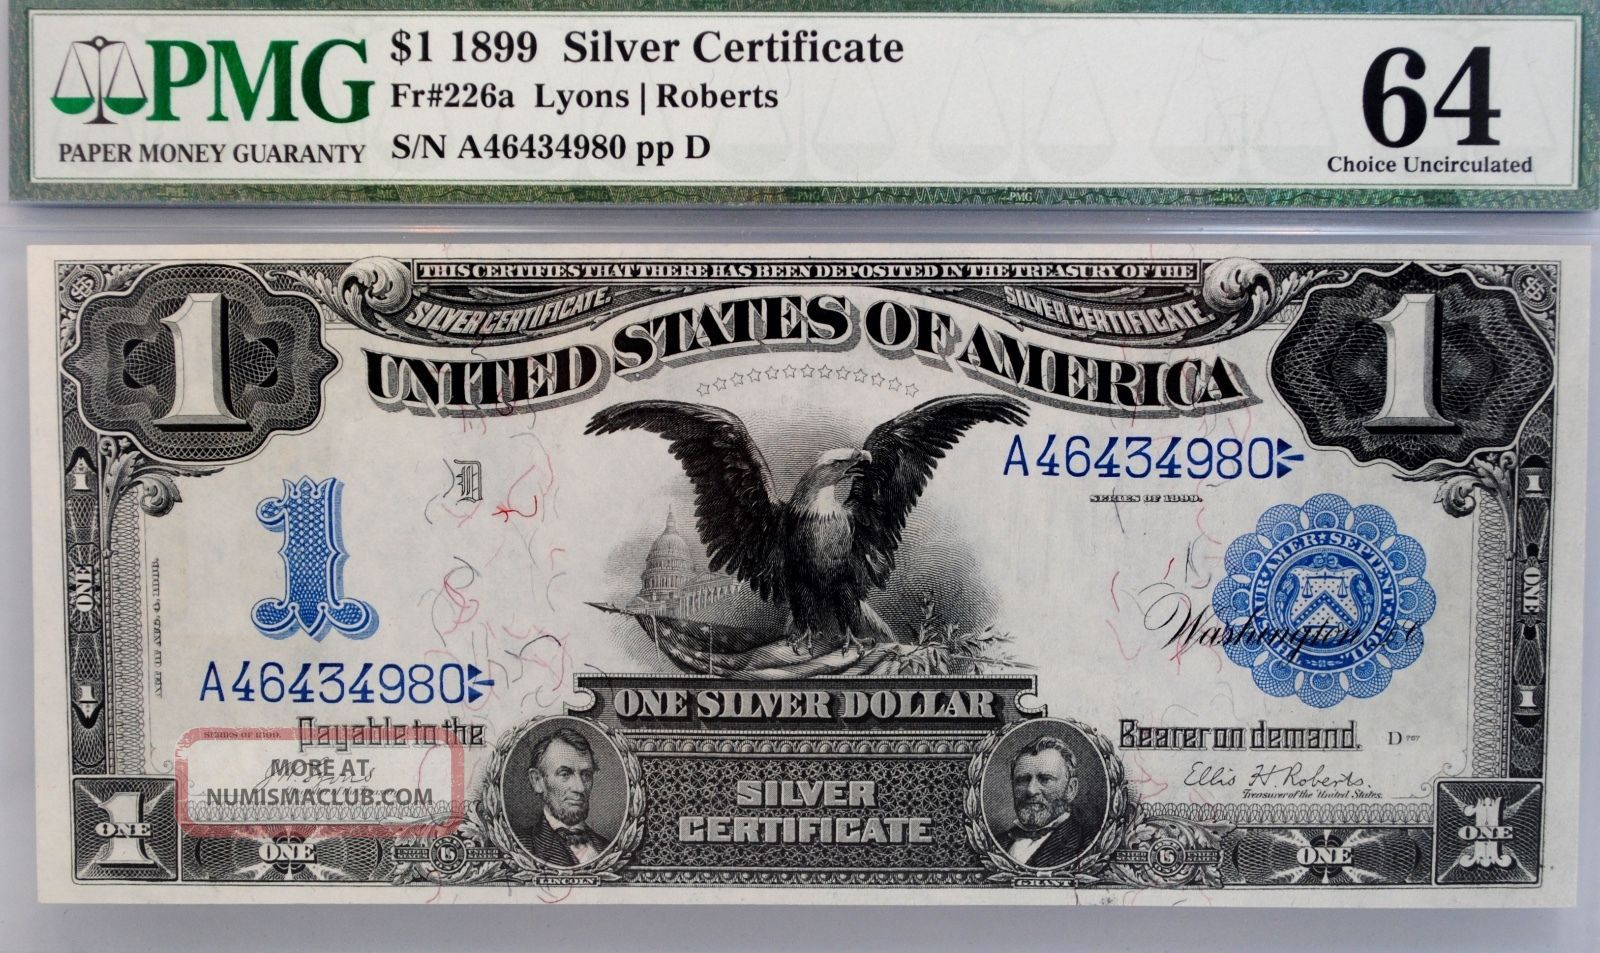 1899 Black Eagle Silver Certificate $1 Pmg 64 Choice Fr 226a Bill Note Bu Large Size Notes photo